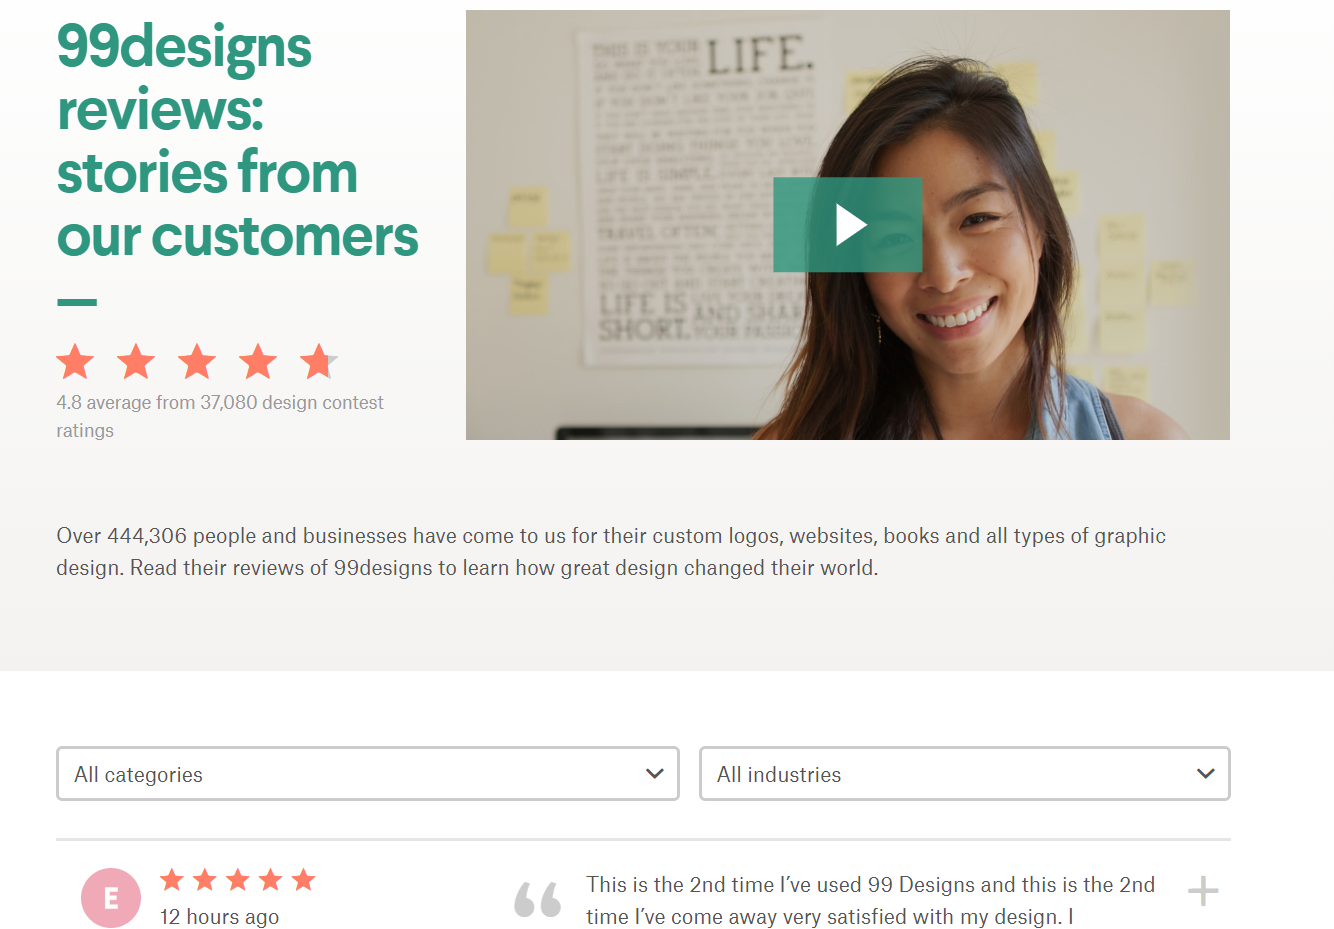 99designs' customer videos and reviews page uses rating system.